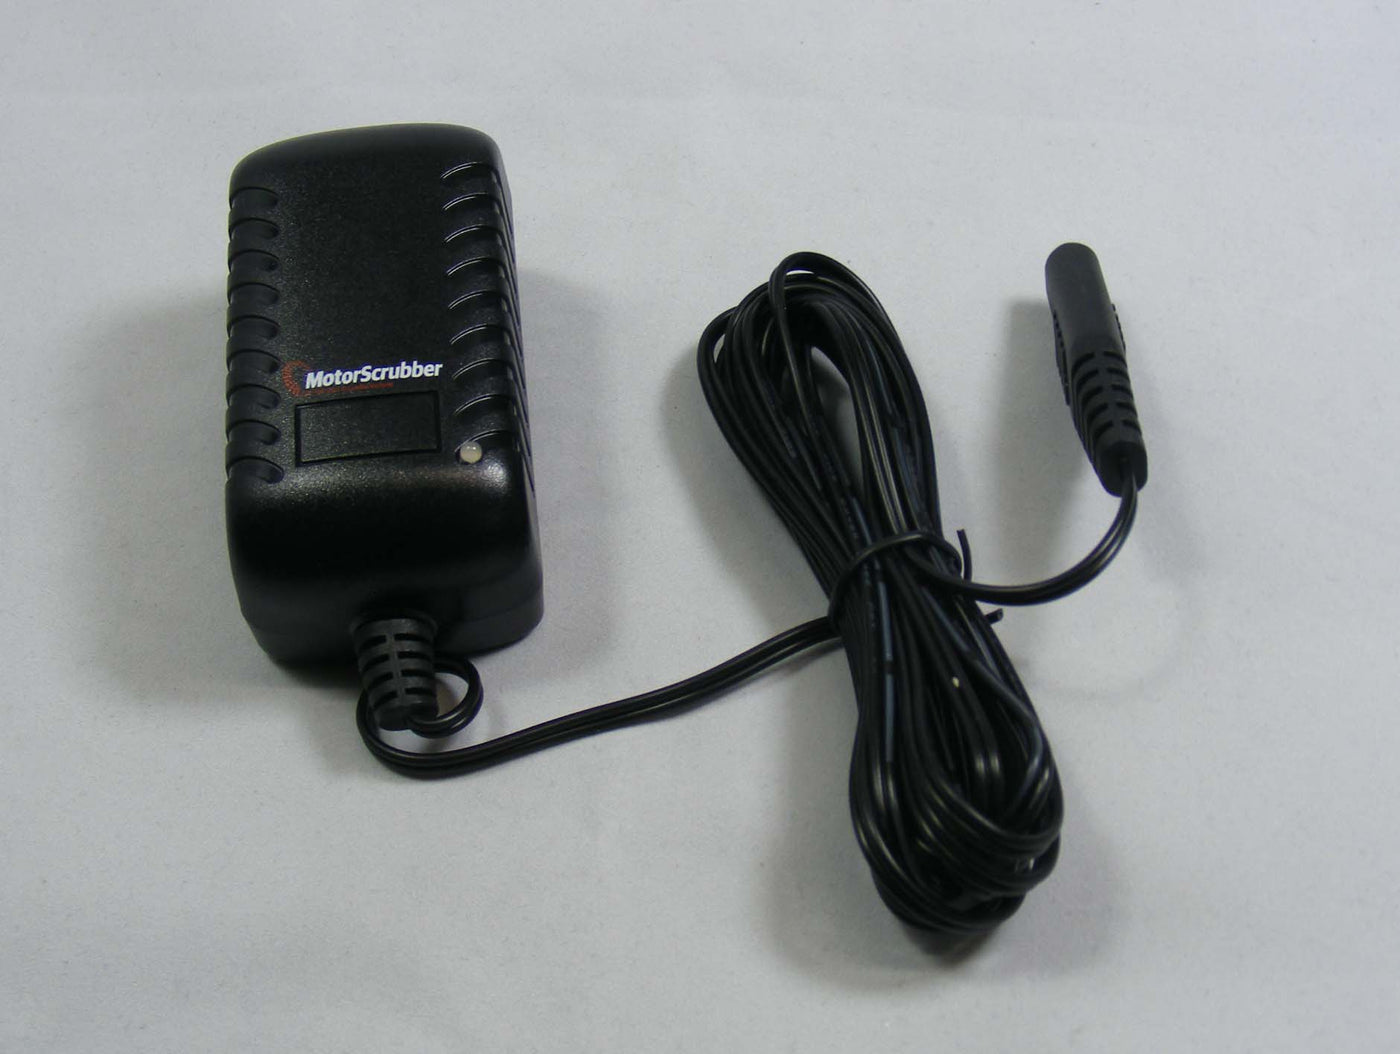 Ms1580 Battery Charger Complete Andersontrade